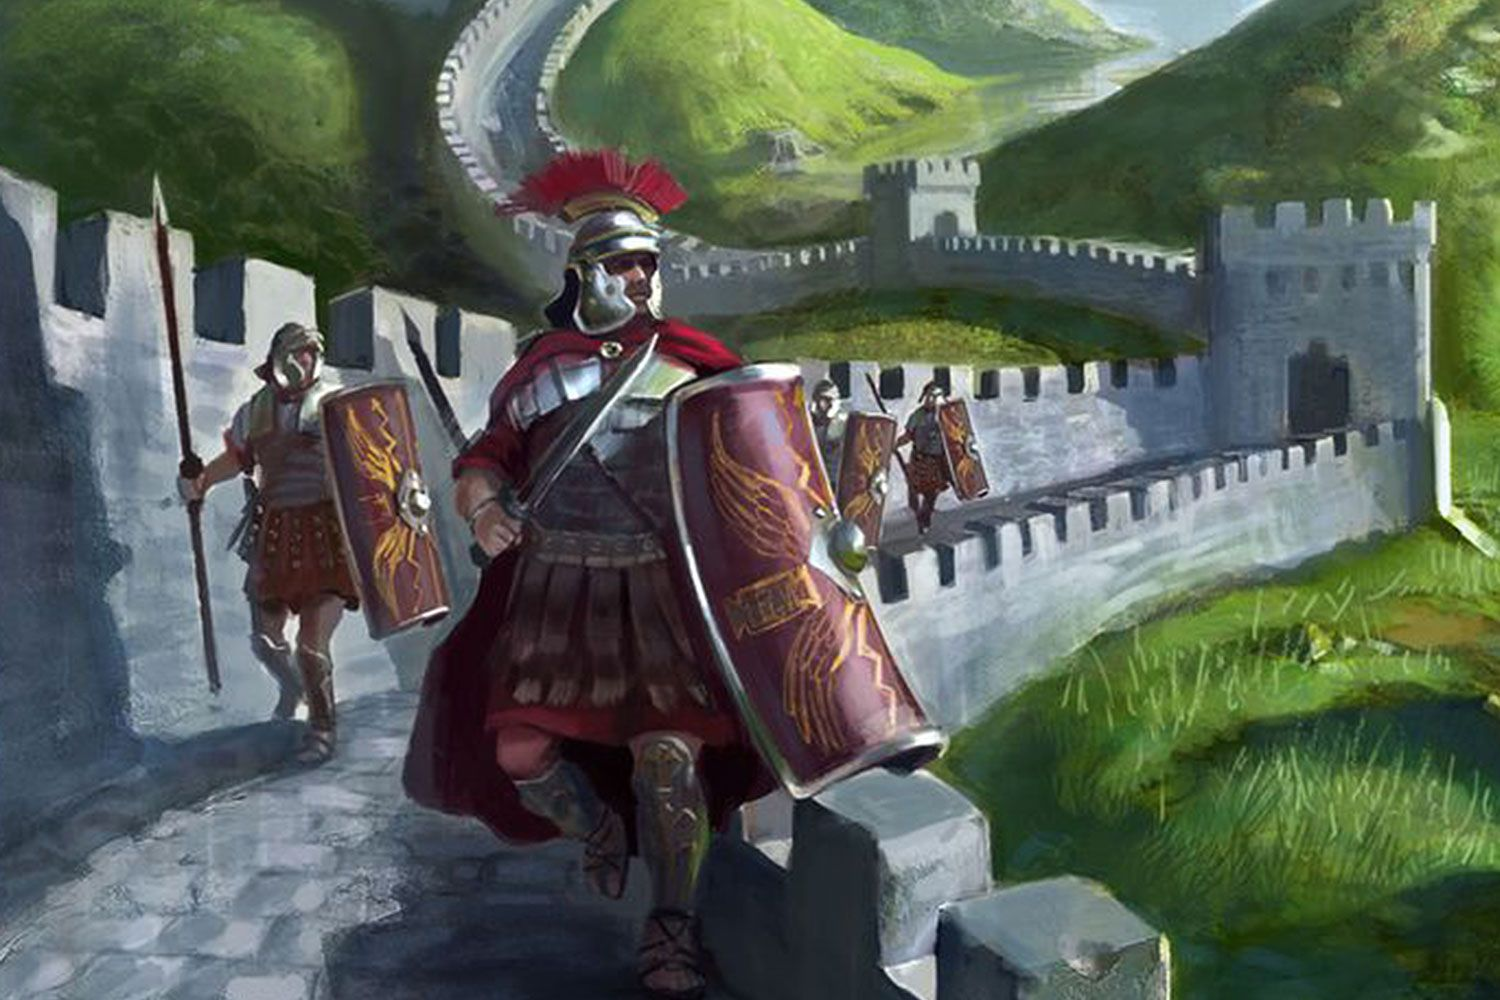 Roman soldiers on Hadrian's wall